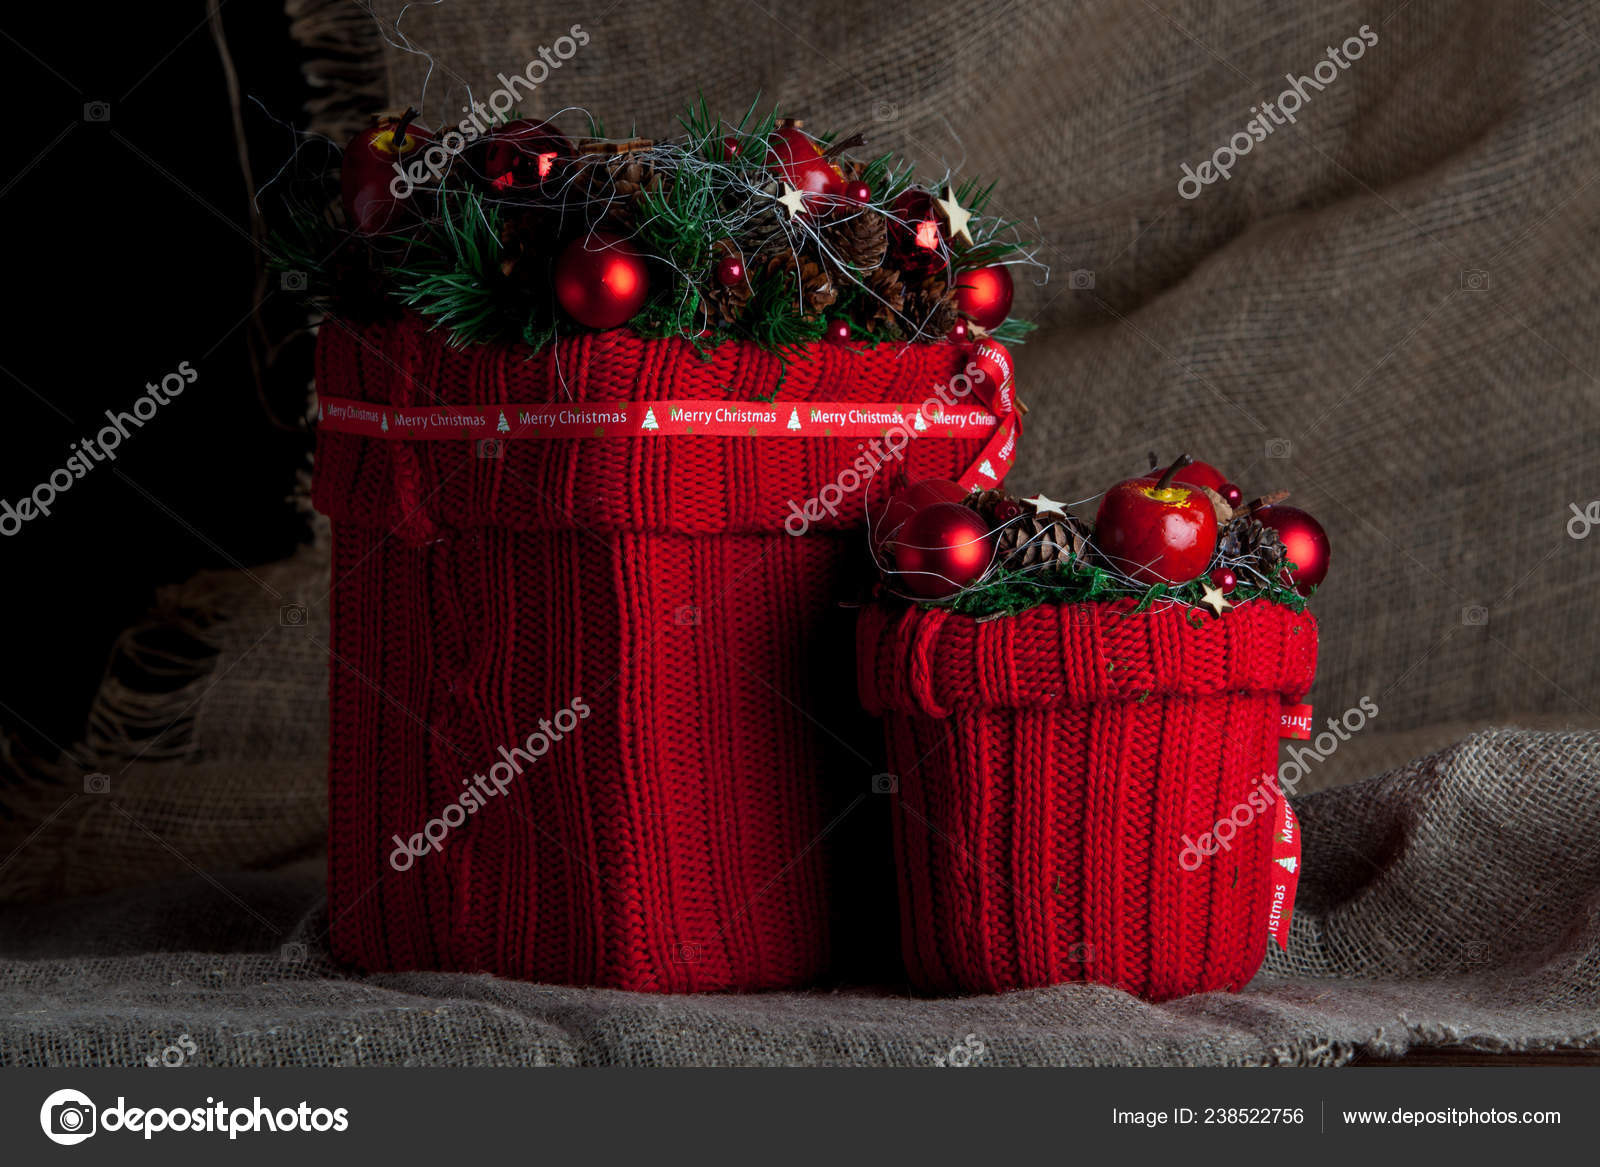 Decorative t box Christmas t boxes Valentine t Christmas presents on dark background